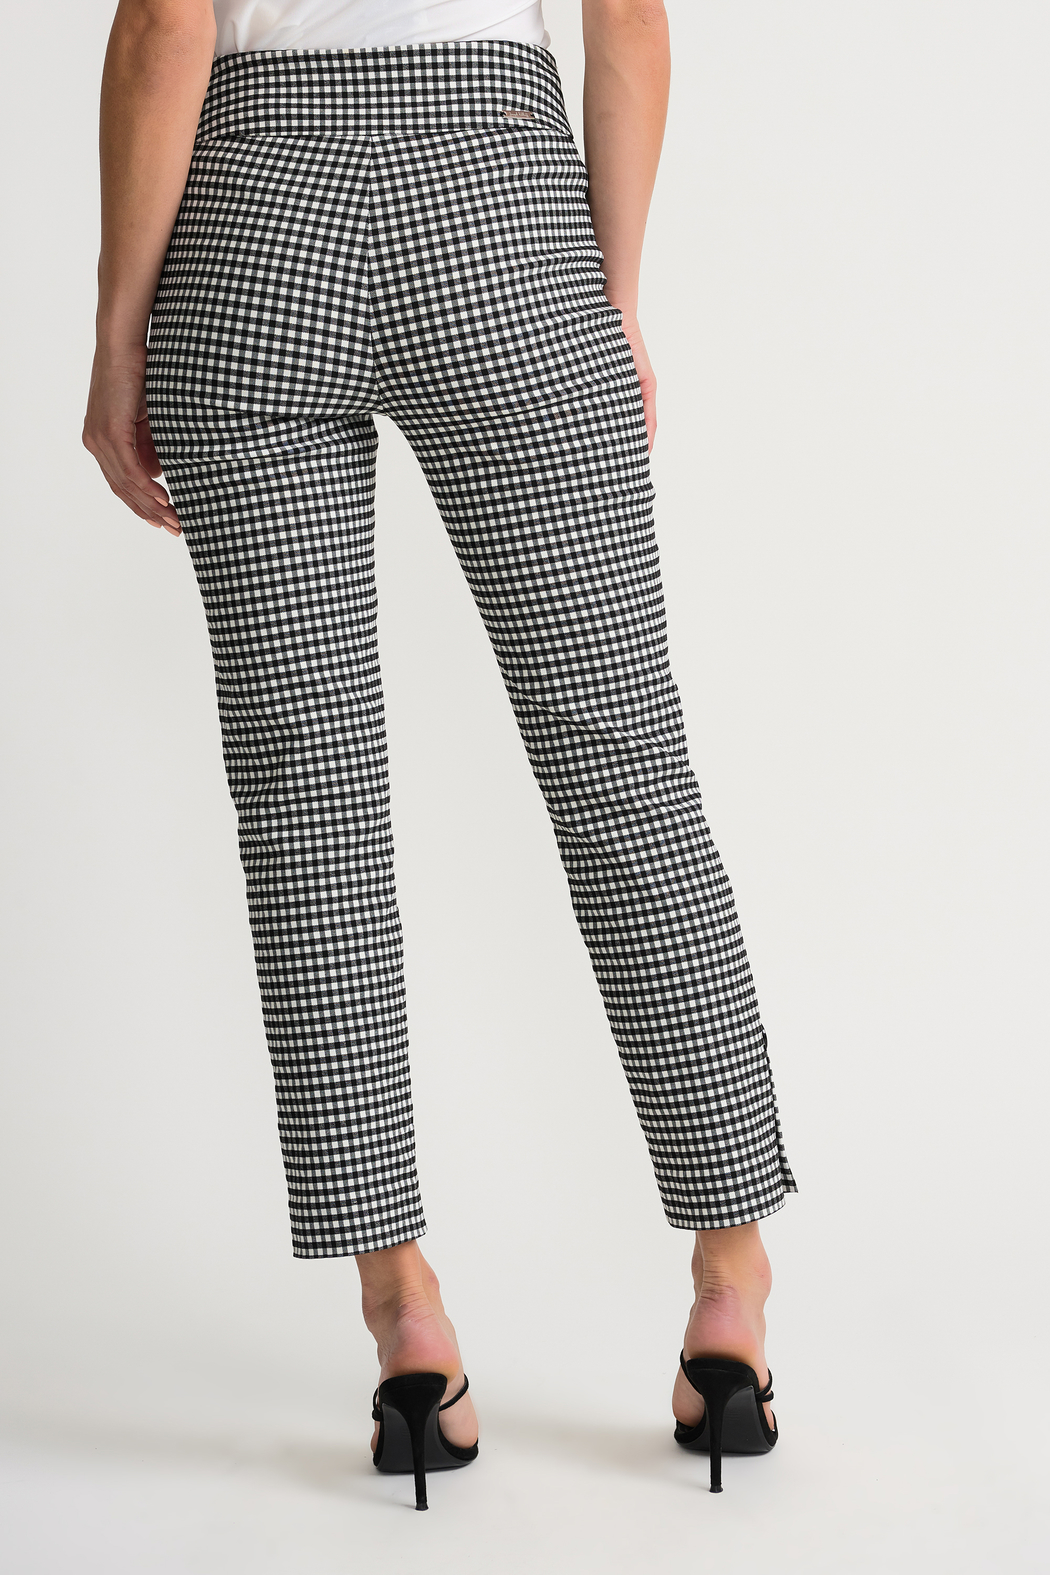 Joseph Ribkoff  Gingham Pants - Side Cropped Image